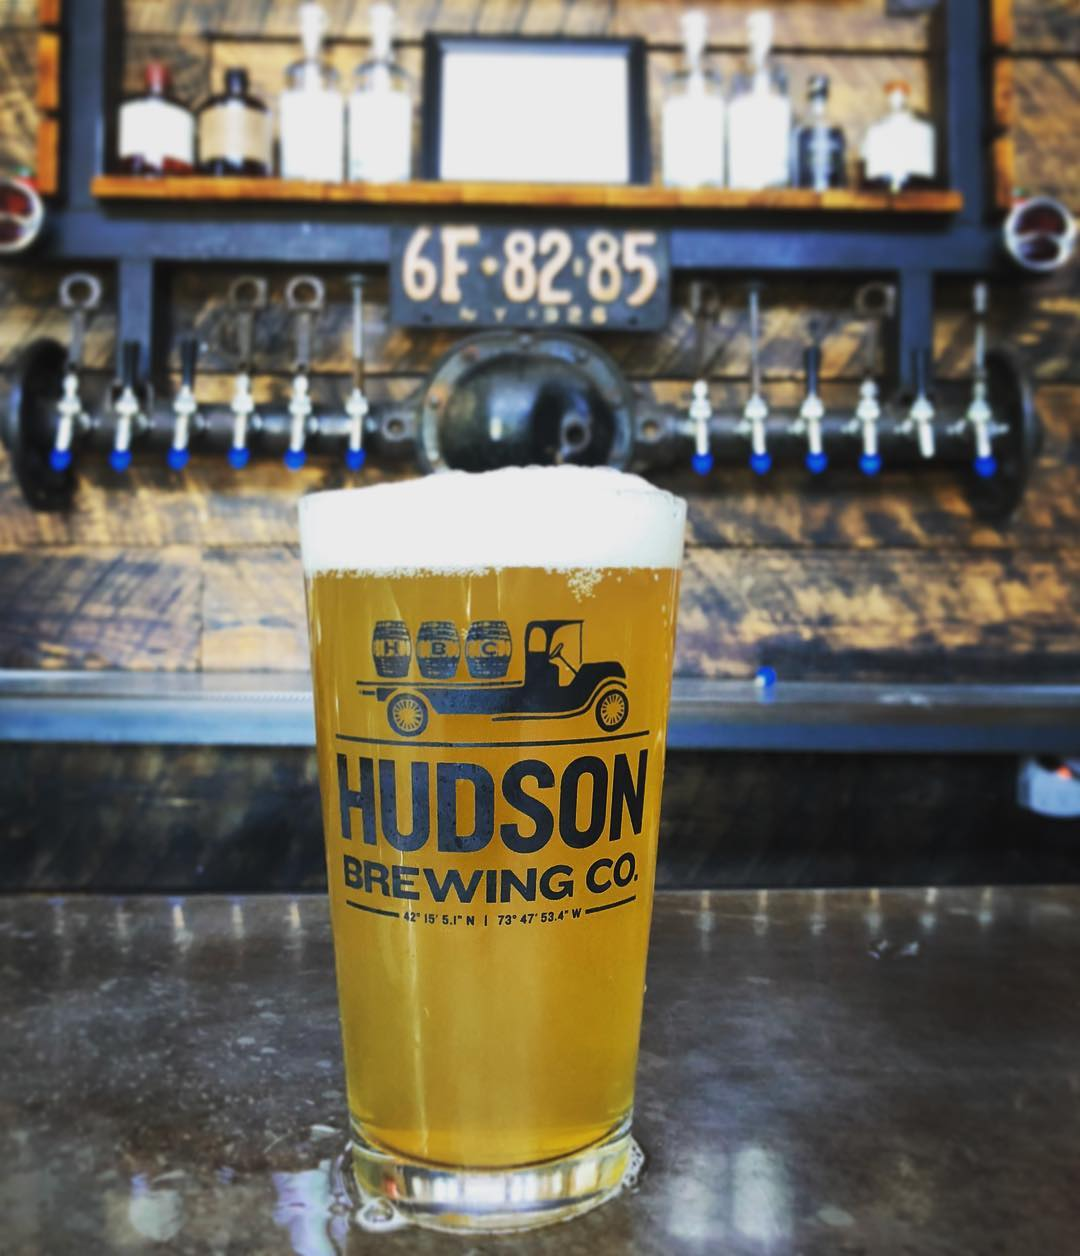 Hudson Brewing Company